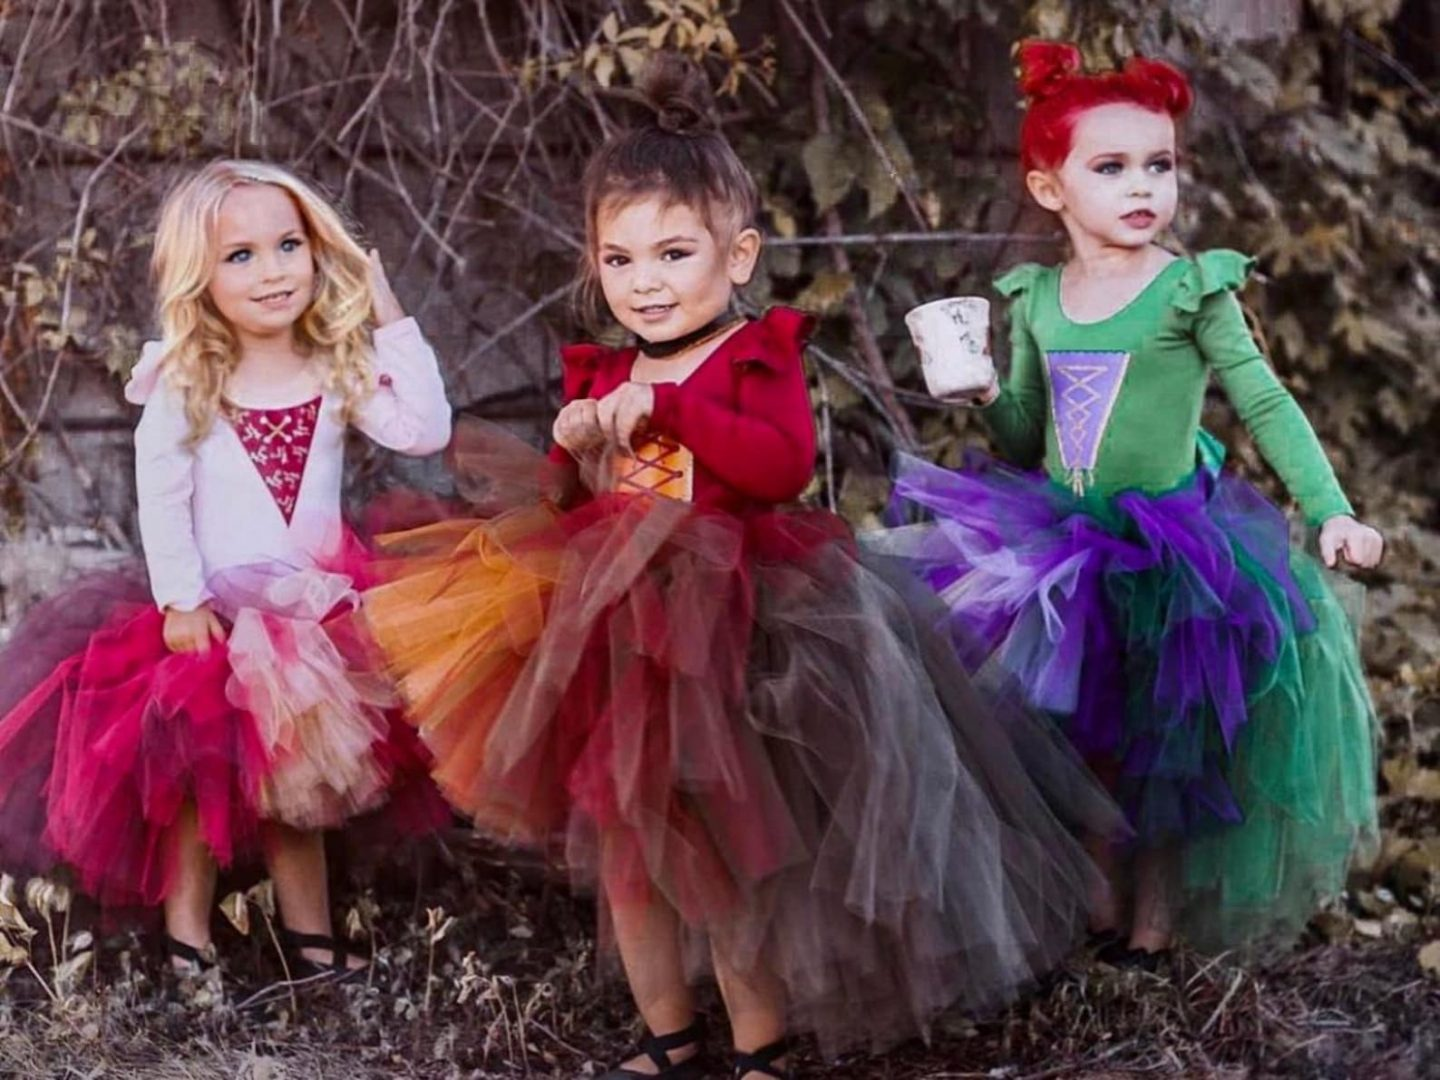 Salem witch Halloween costumes for kids and siblings